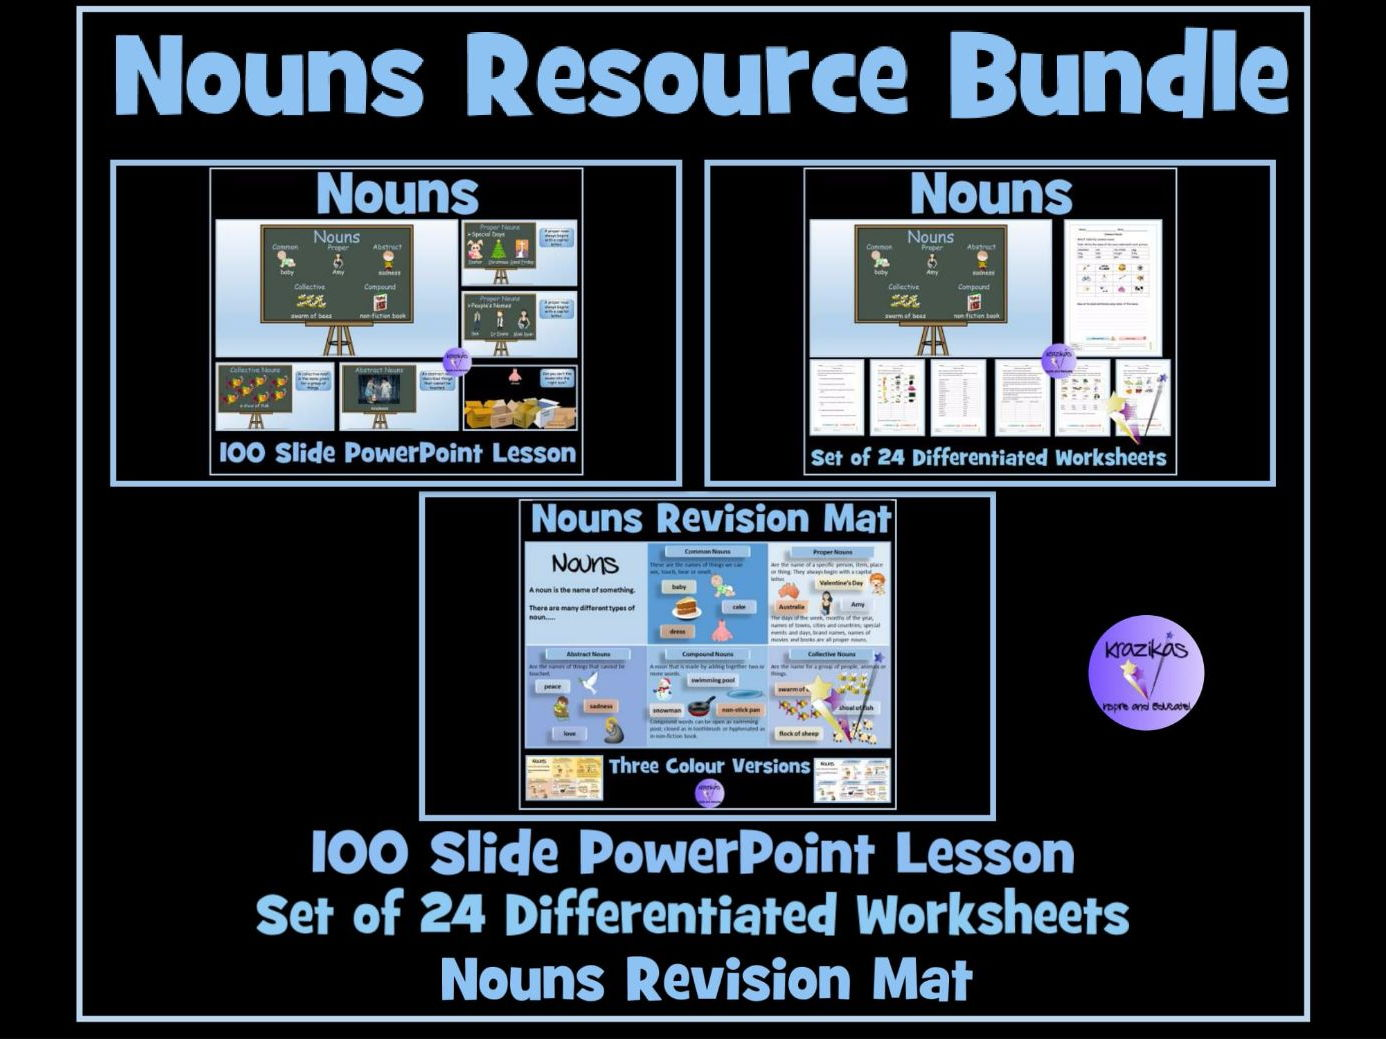 Nouns - 100 Slide Lesson PowerPoint, Set of 24 Differentiated  Worksheets and Noun Revision Mat